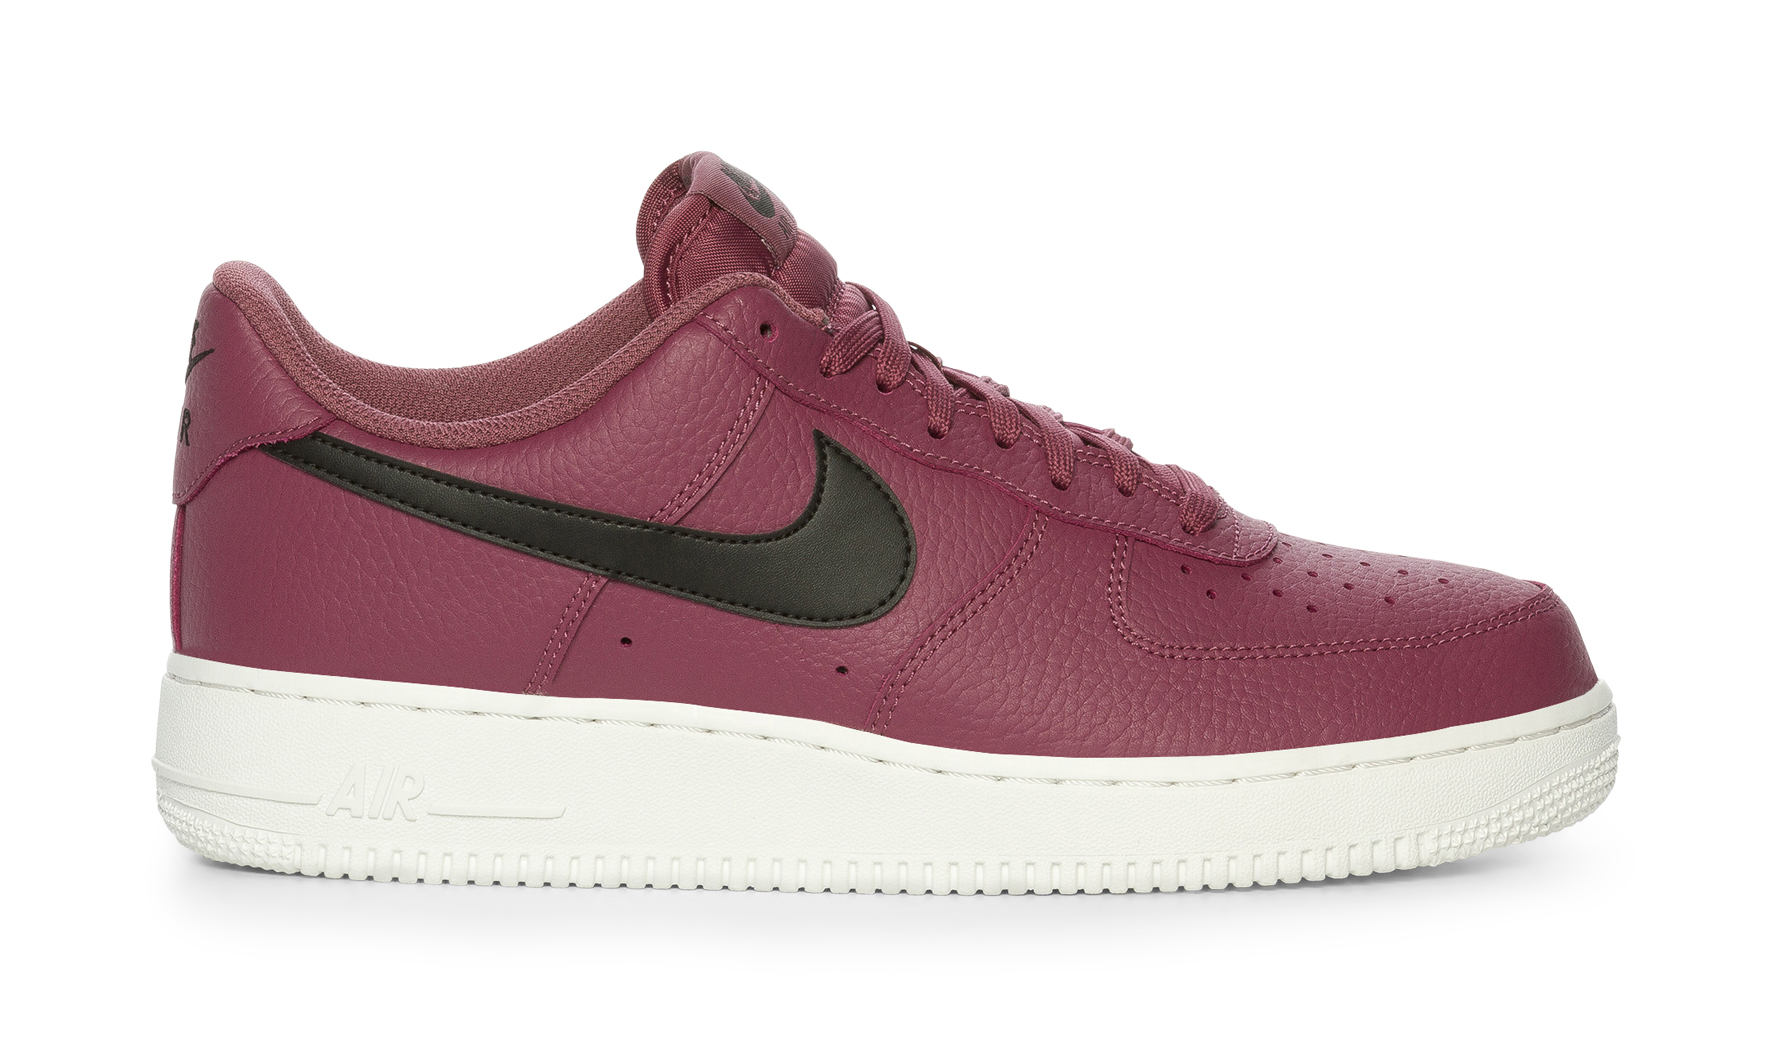 separation shoes 1edad 1998a Nike Air Force 1  07 - Röda 314006 feetfirst.se